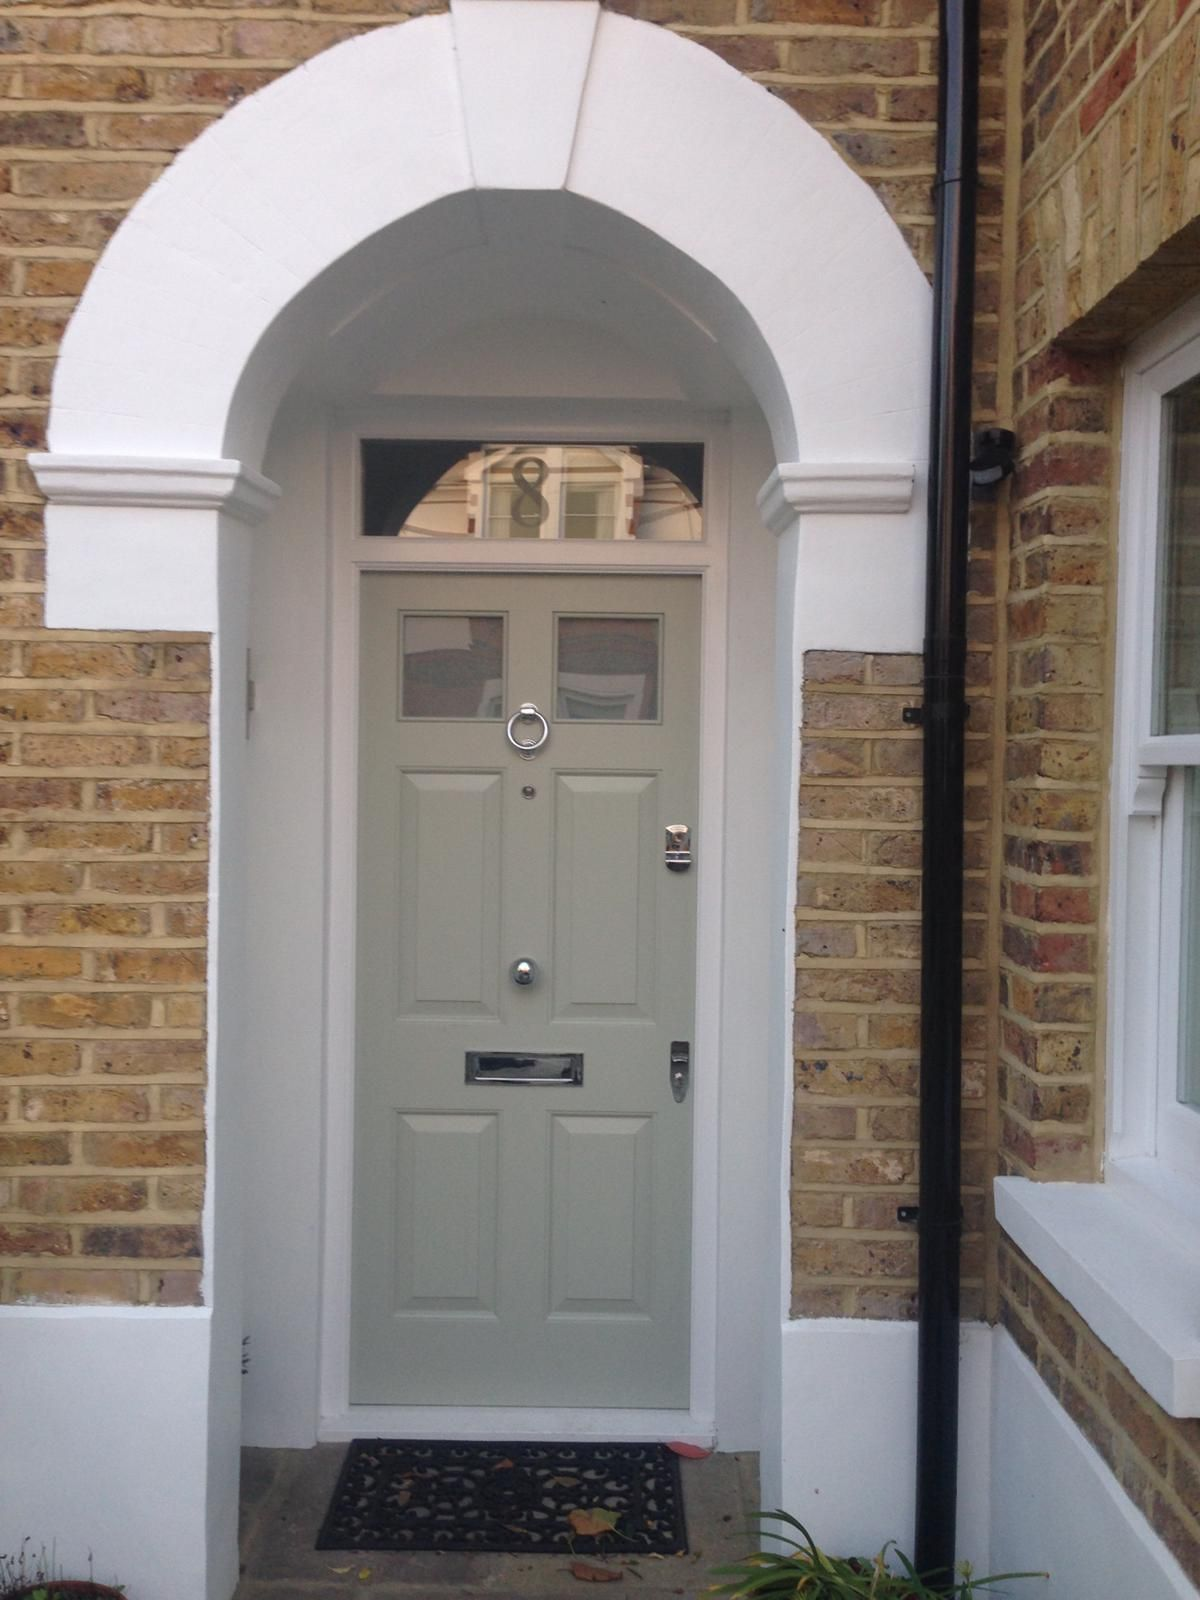 Victorian Style Front Door With Fanlight Made From Accoya  #victorianfrontdoors Victorian Style Front Door With Fanlight Made From Accoya #victorianfrontdoors Victorian Style Front Door With Fanlight Made From Accoya  #victorianfrontdoors Victorian Style Front Door With Fanlight Made From Accoya #victorianfrontdoors Victorian Style Front Door With Fanlight Made From Accoya  #victorianfrontdoors Victorian Style Front Door With Fanlight Made From Accoya #victorianfrontdoors Victorian Style Front D #victorianfrontdoors